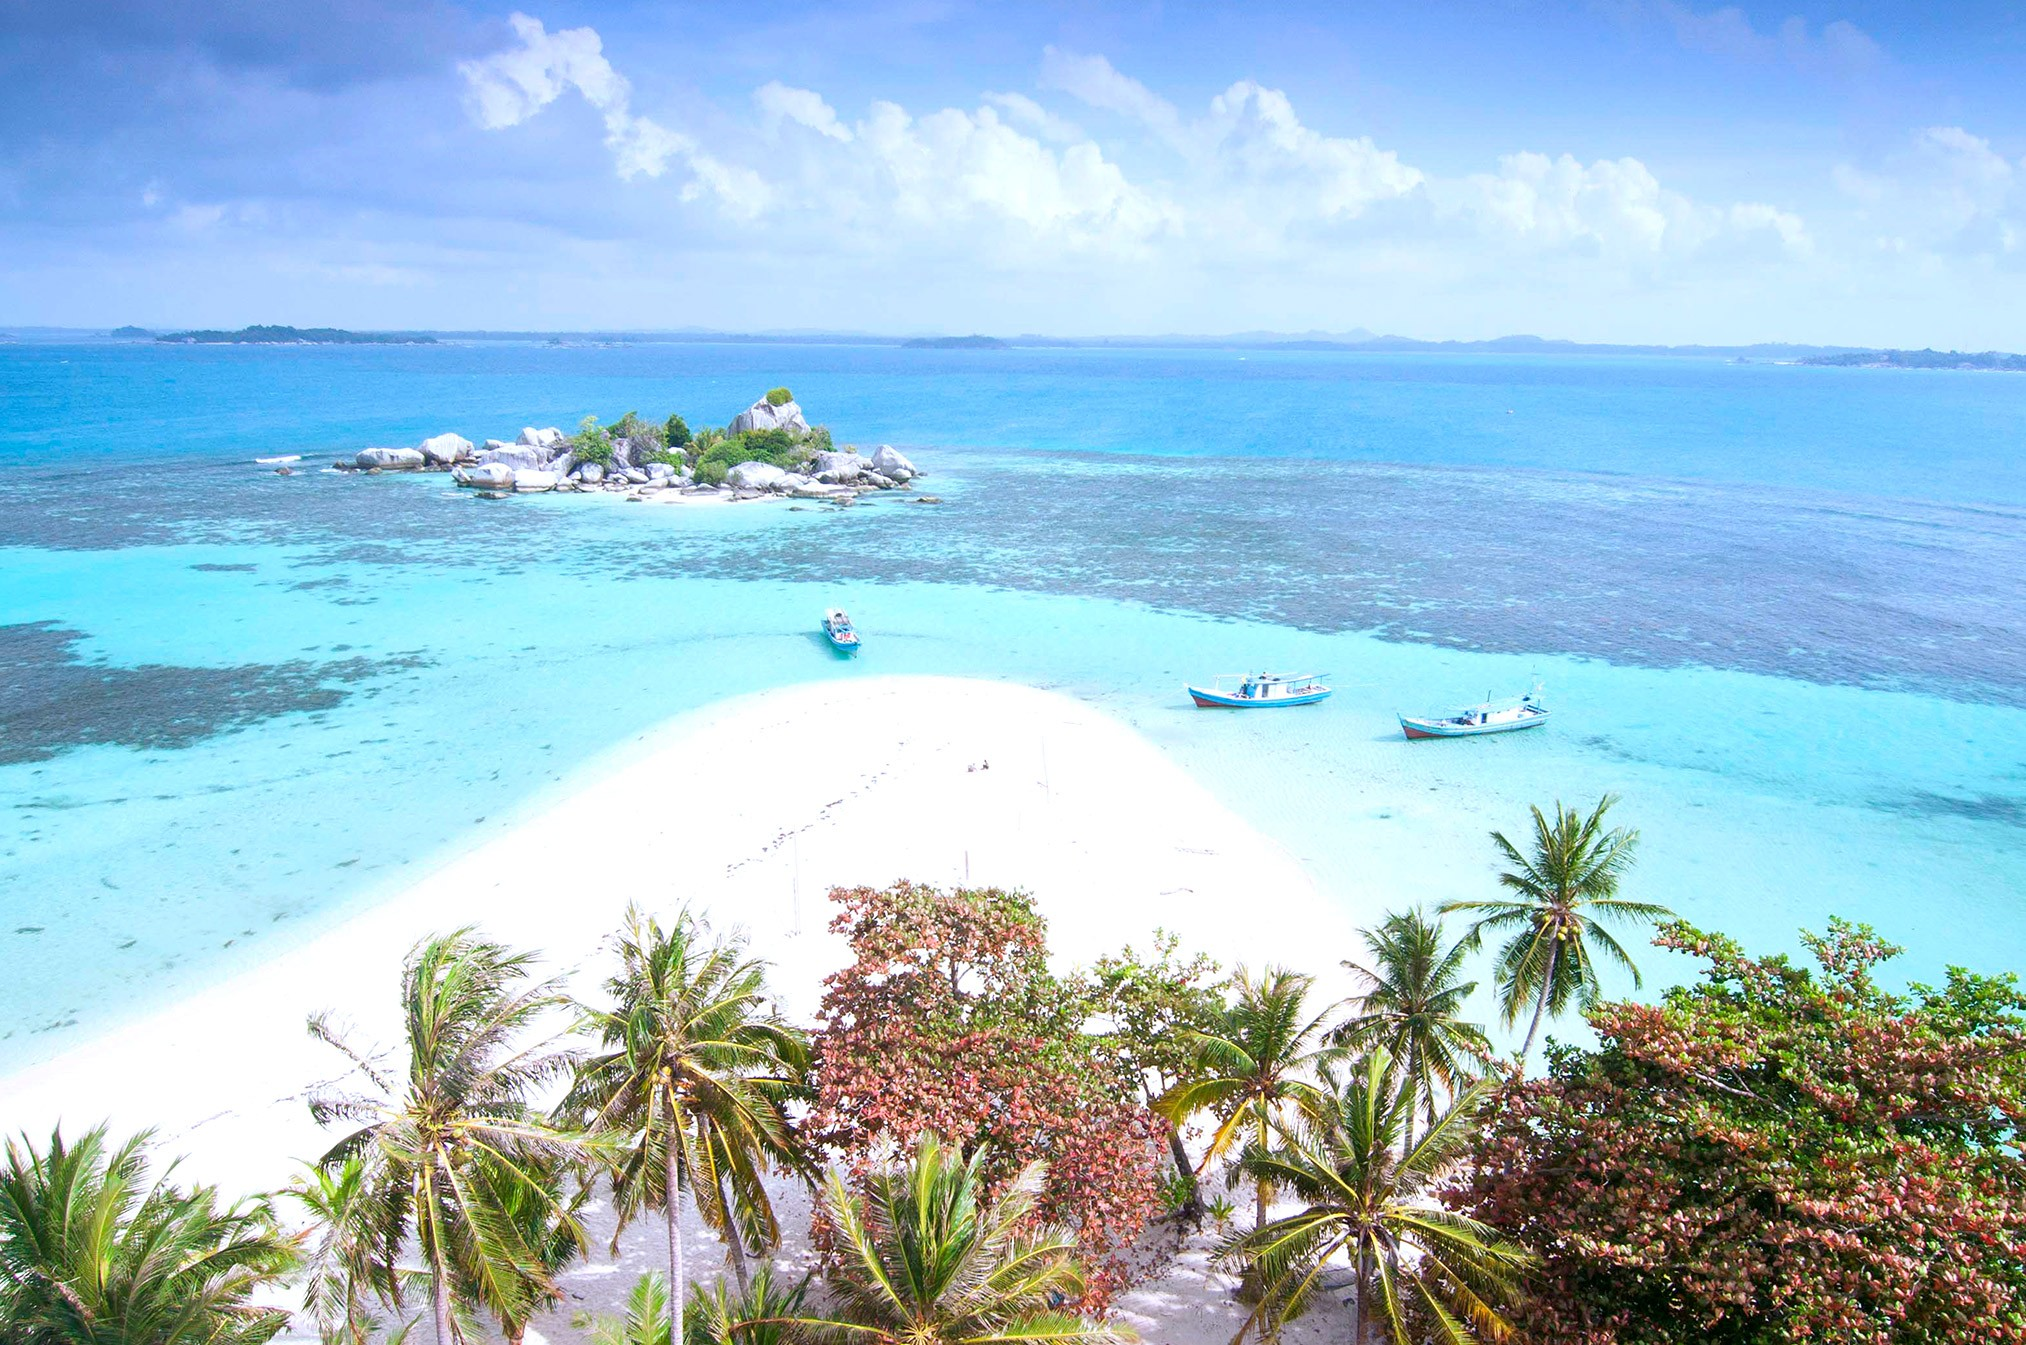 The largest island is Sumatra, which is still part of the Sunda Island - Serious Facts